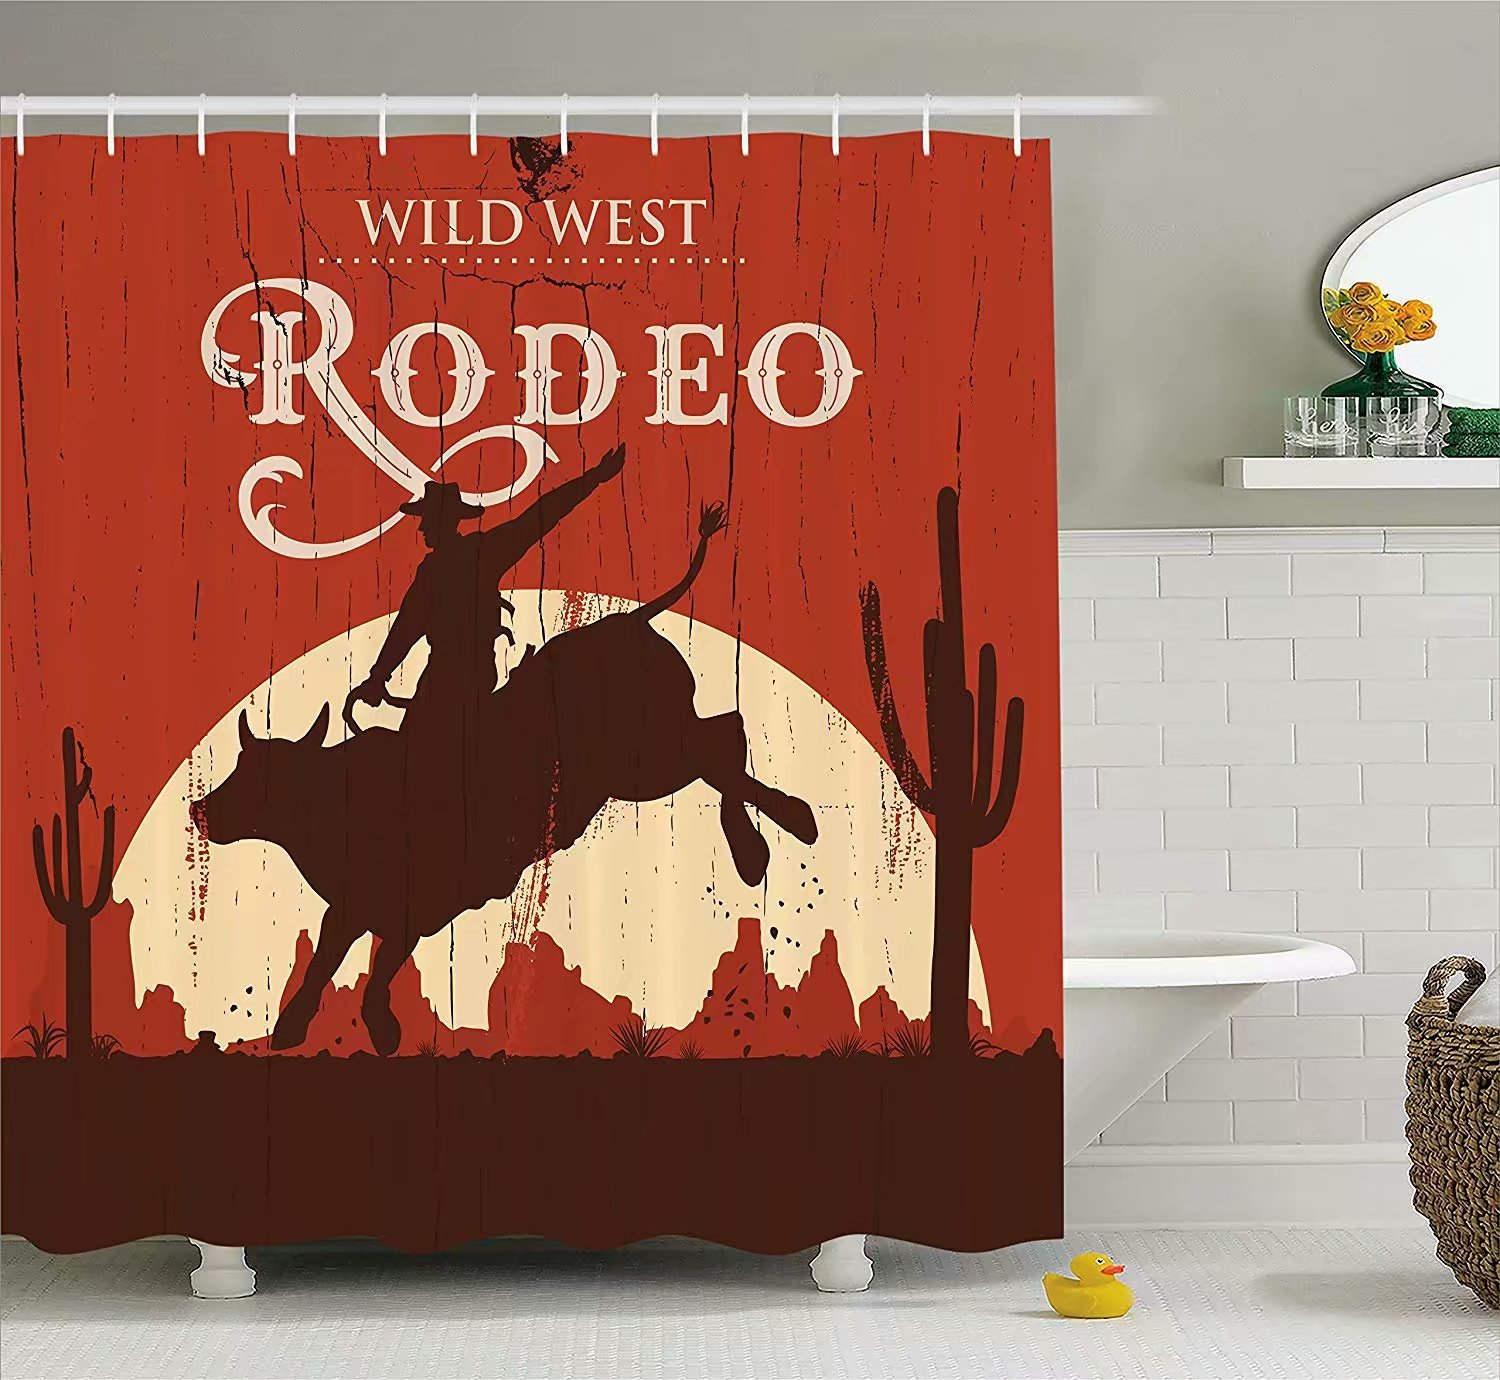 KANATSIU Rodeo Cowboy Riding Bull Wooden Sign Western Wilderness at Sunset Image Shower Curtain 12 plactic Hooks,100% Made Polyester,Mildew Resistant & Machine Washable,Width x Height is 60x72